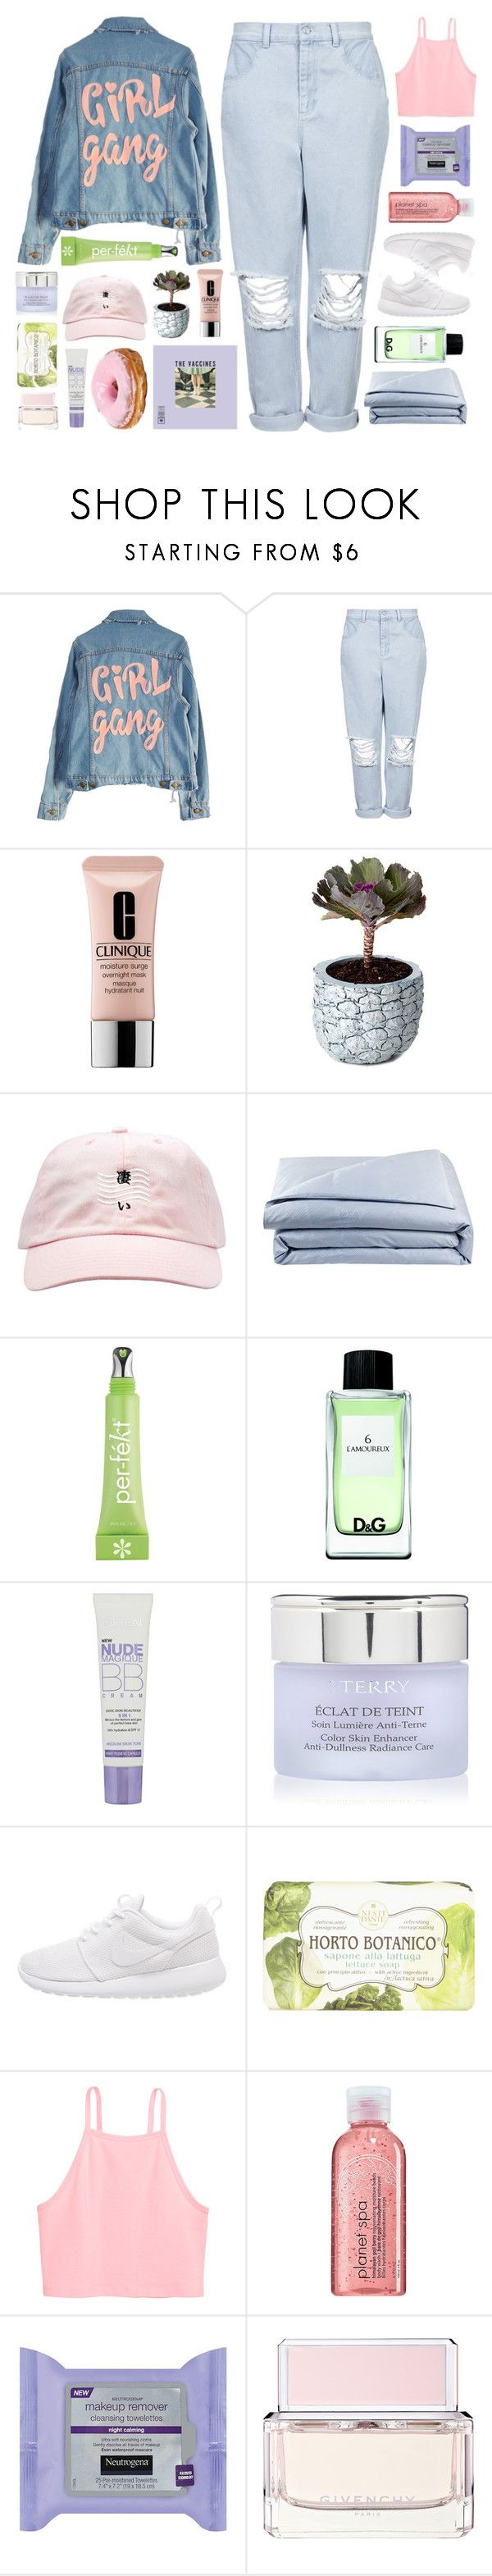 """Untitled #2580"" by tacoxcat ❤ liked on Polyvore featuring High Heels Suicide, Boutique, Clinique, Chen Chen & Kai Williams, Frette, Per-fékt Beauty, D&G, L'Oréal Paris, By Terry and NIKE"